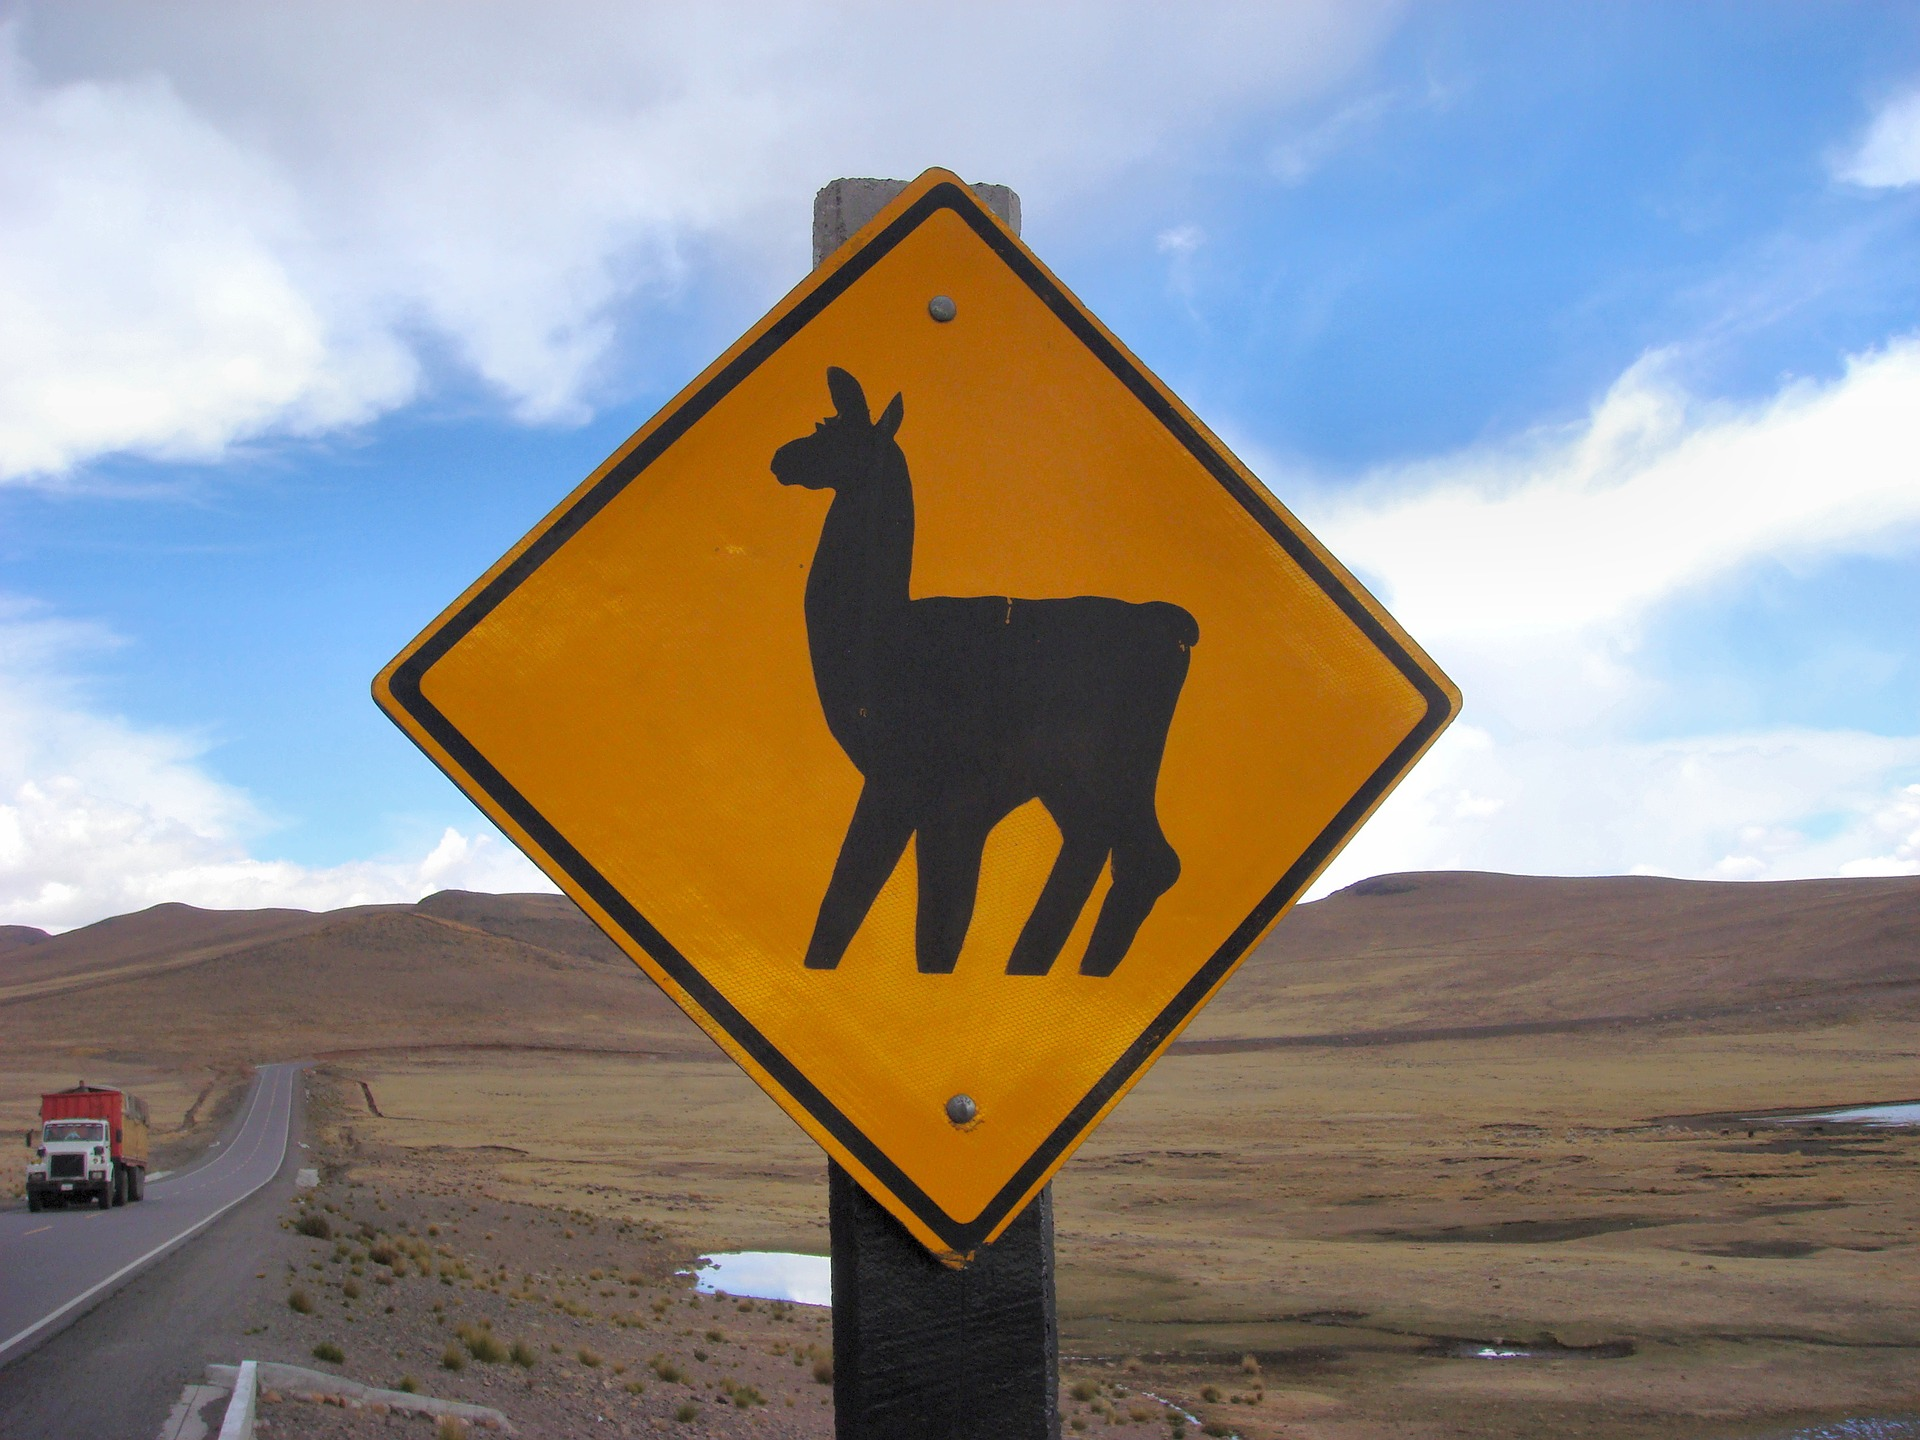 Lama Warnschild